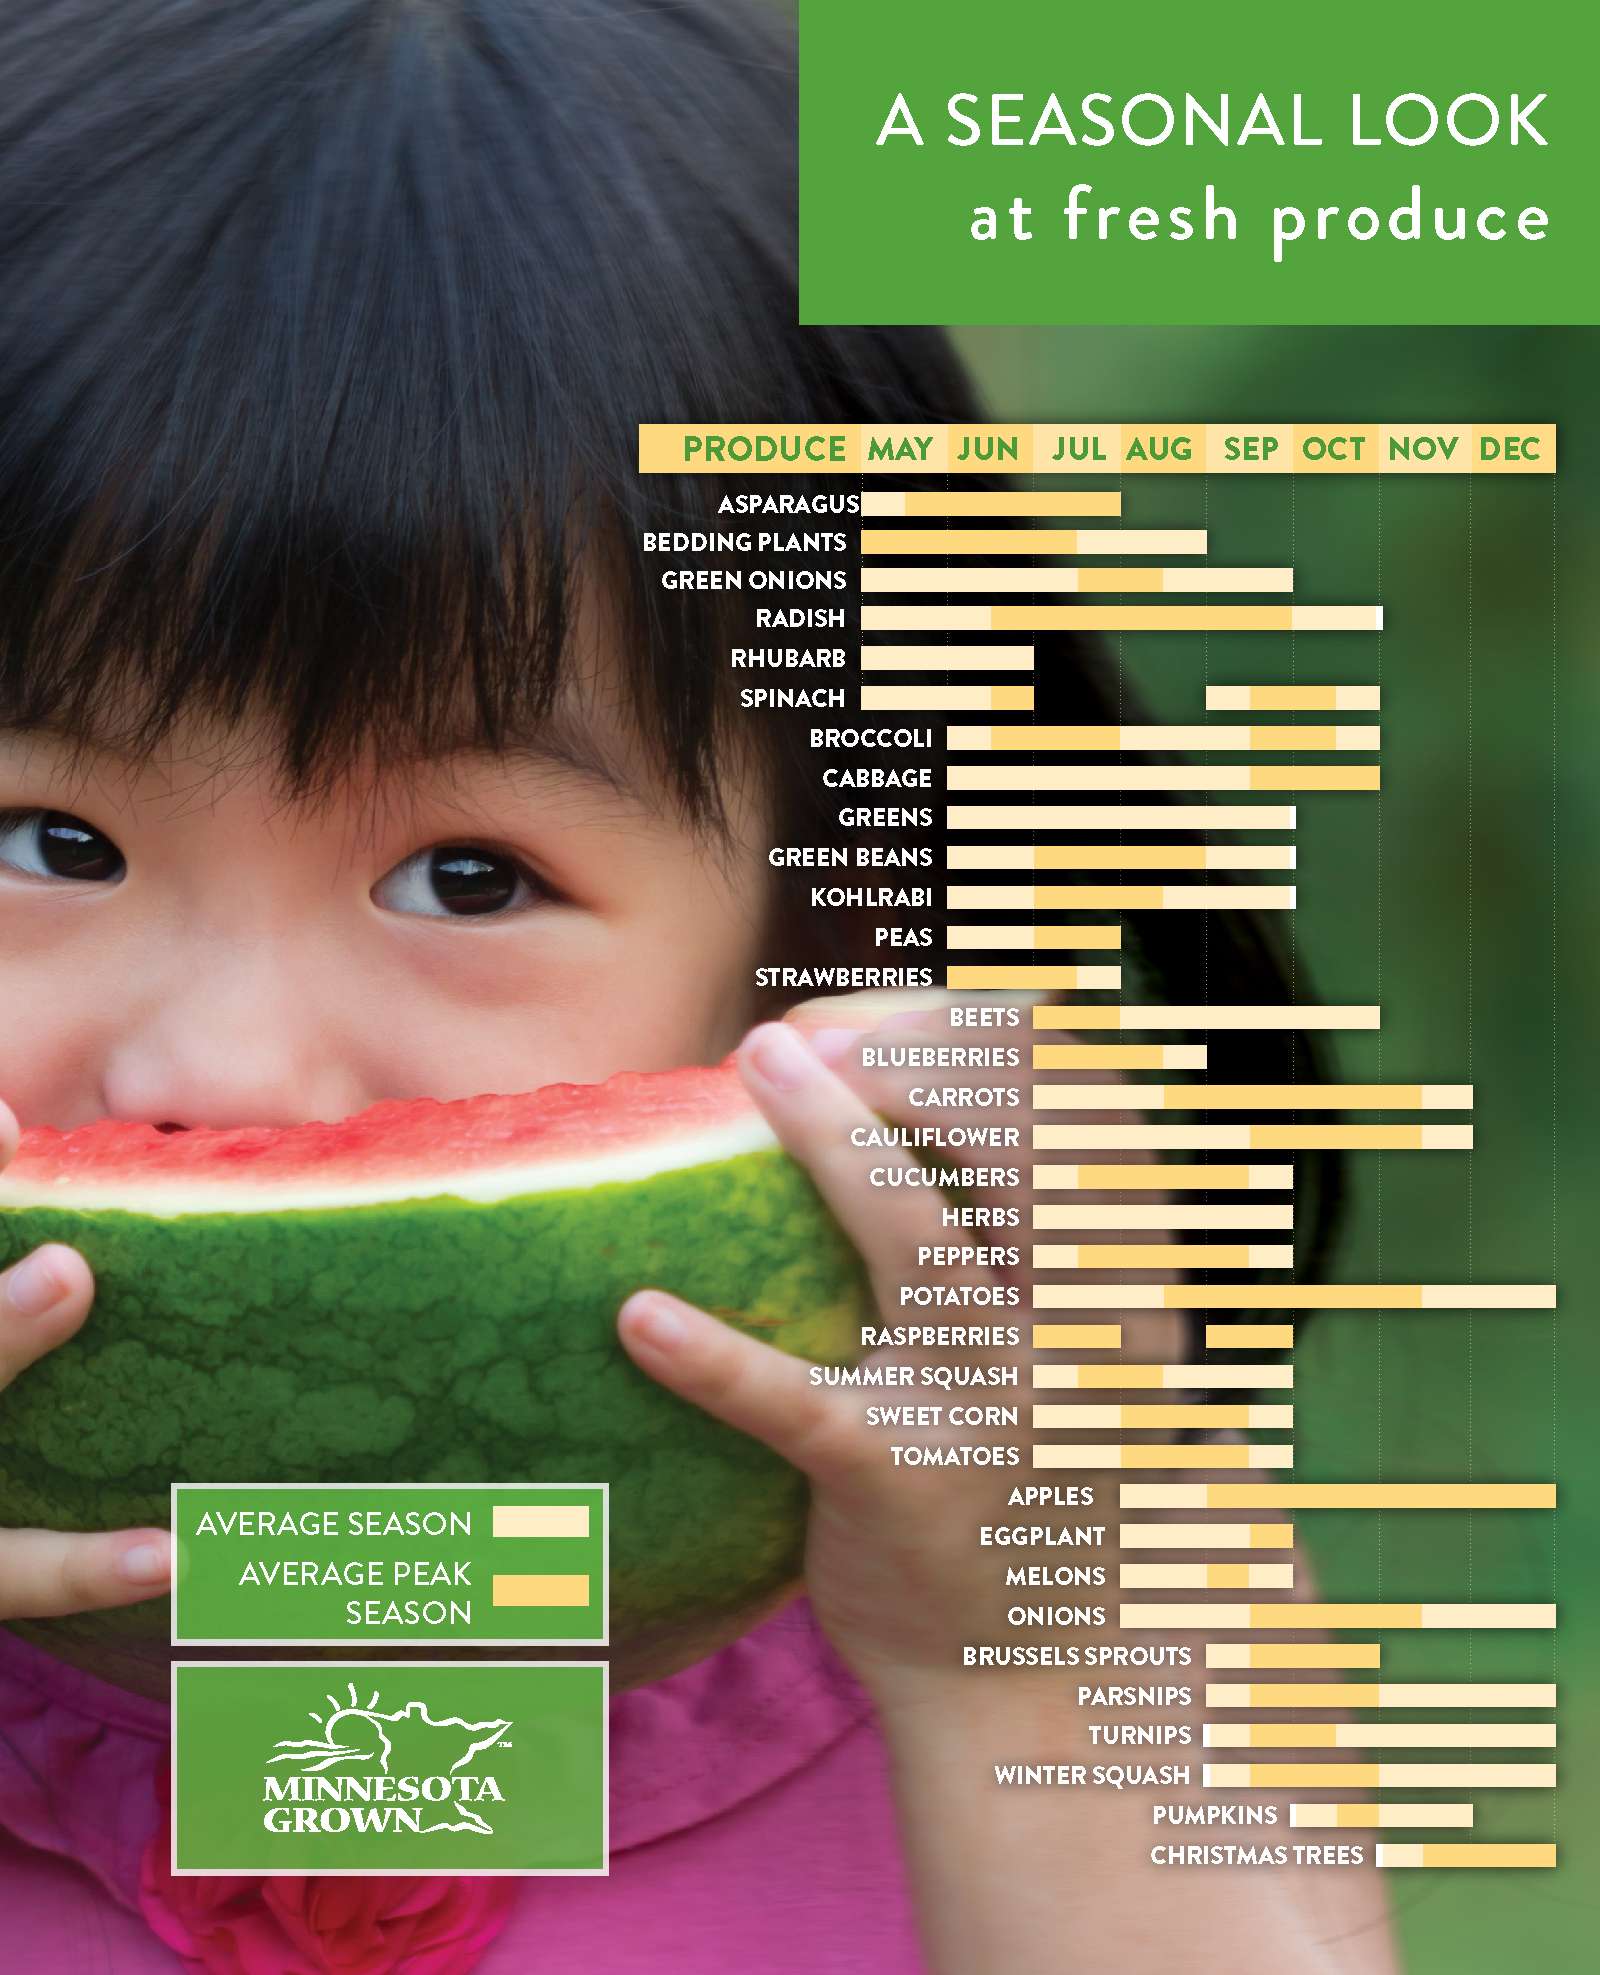 PIcture of a young girl biting into watermelon beside the seasonal produce chart